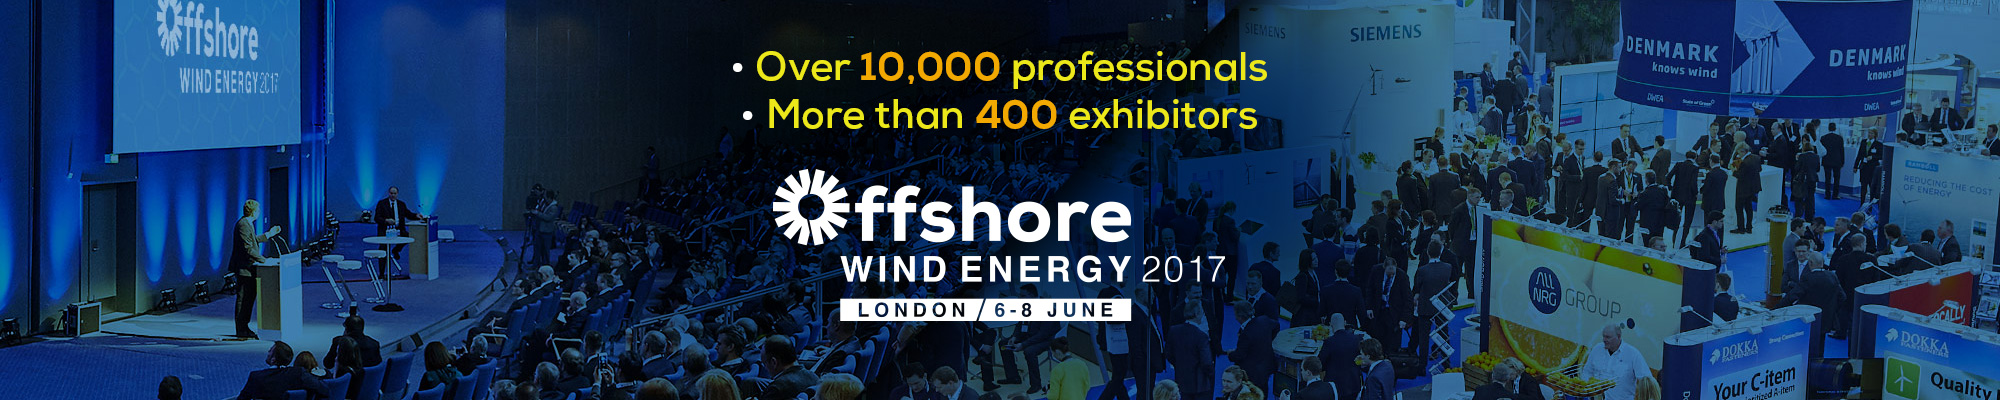 offshore 2017 event in london